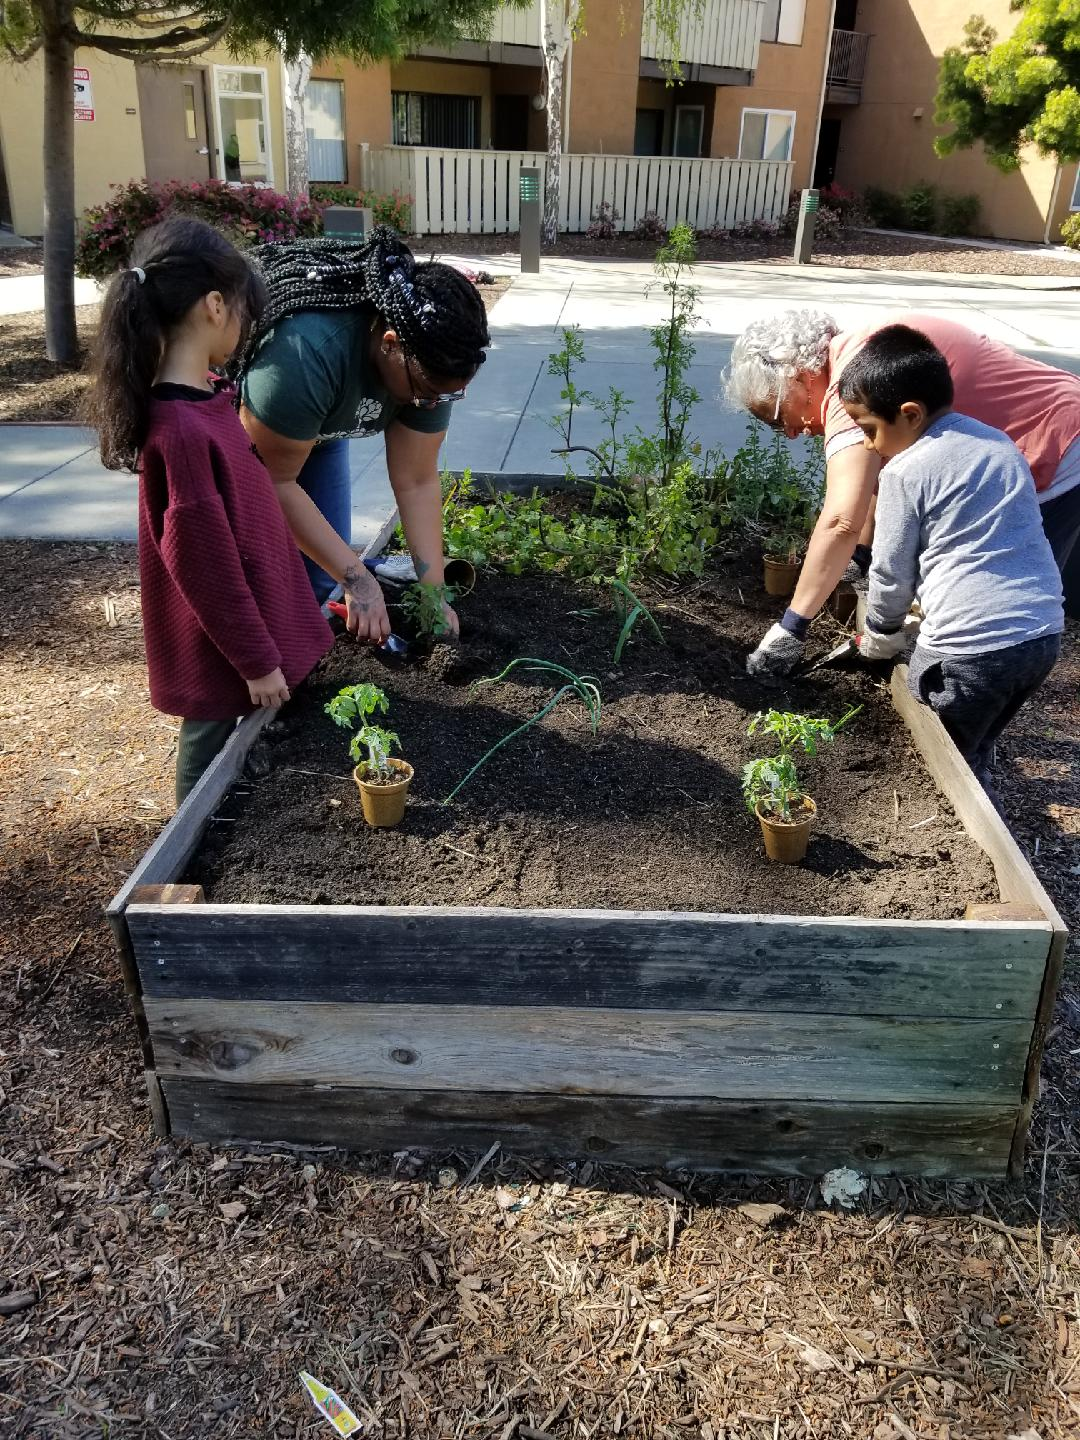 Elder and youths at Community Justice Garden, Ashland Apartments